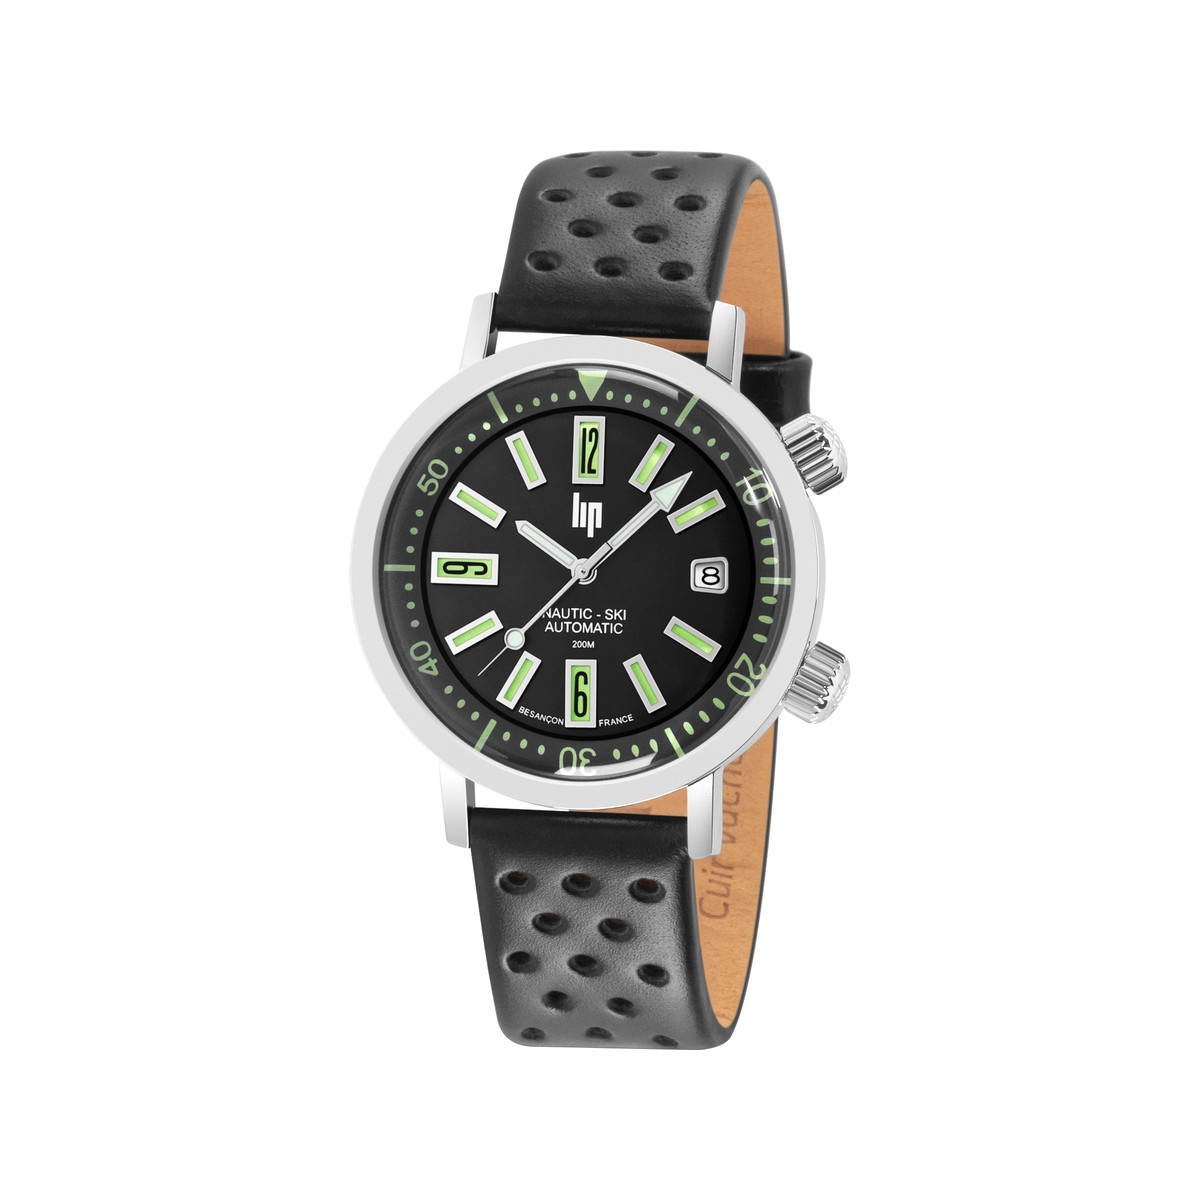 Montre Lip mixte automatique saphir coffret